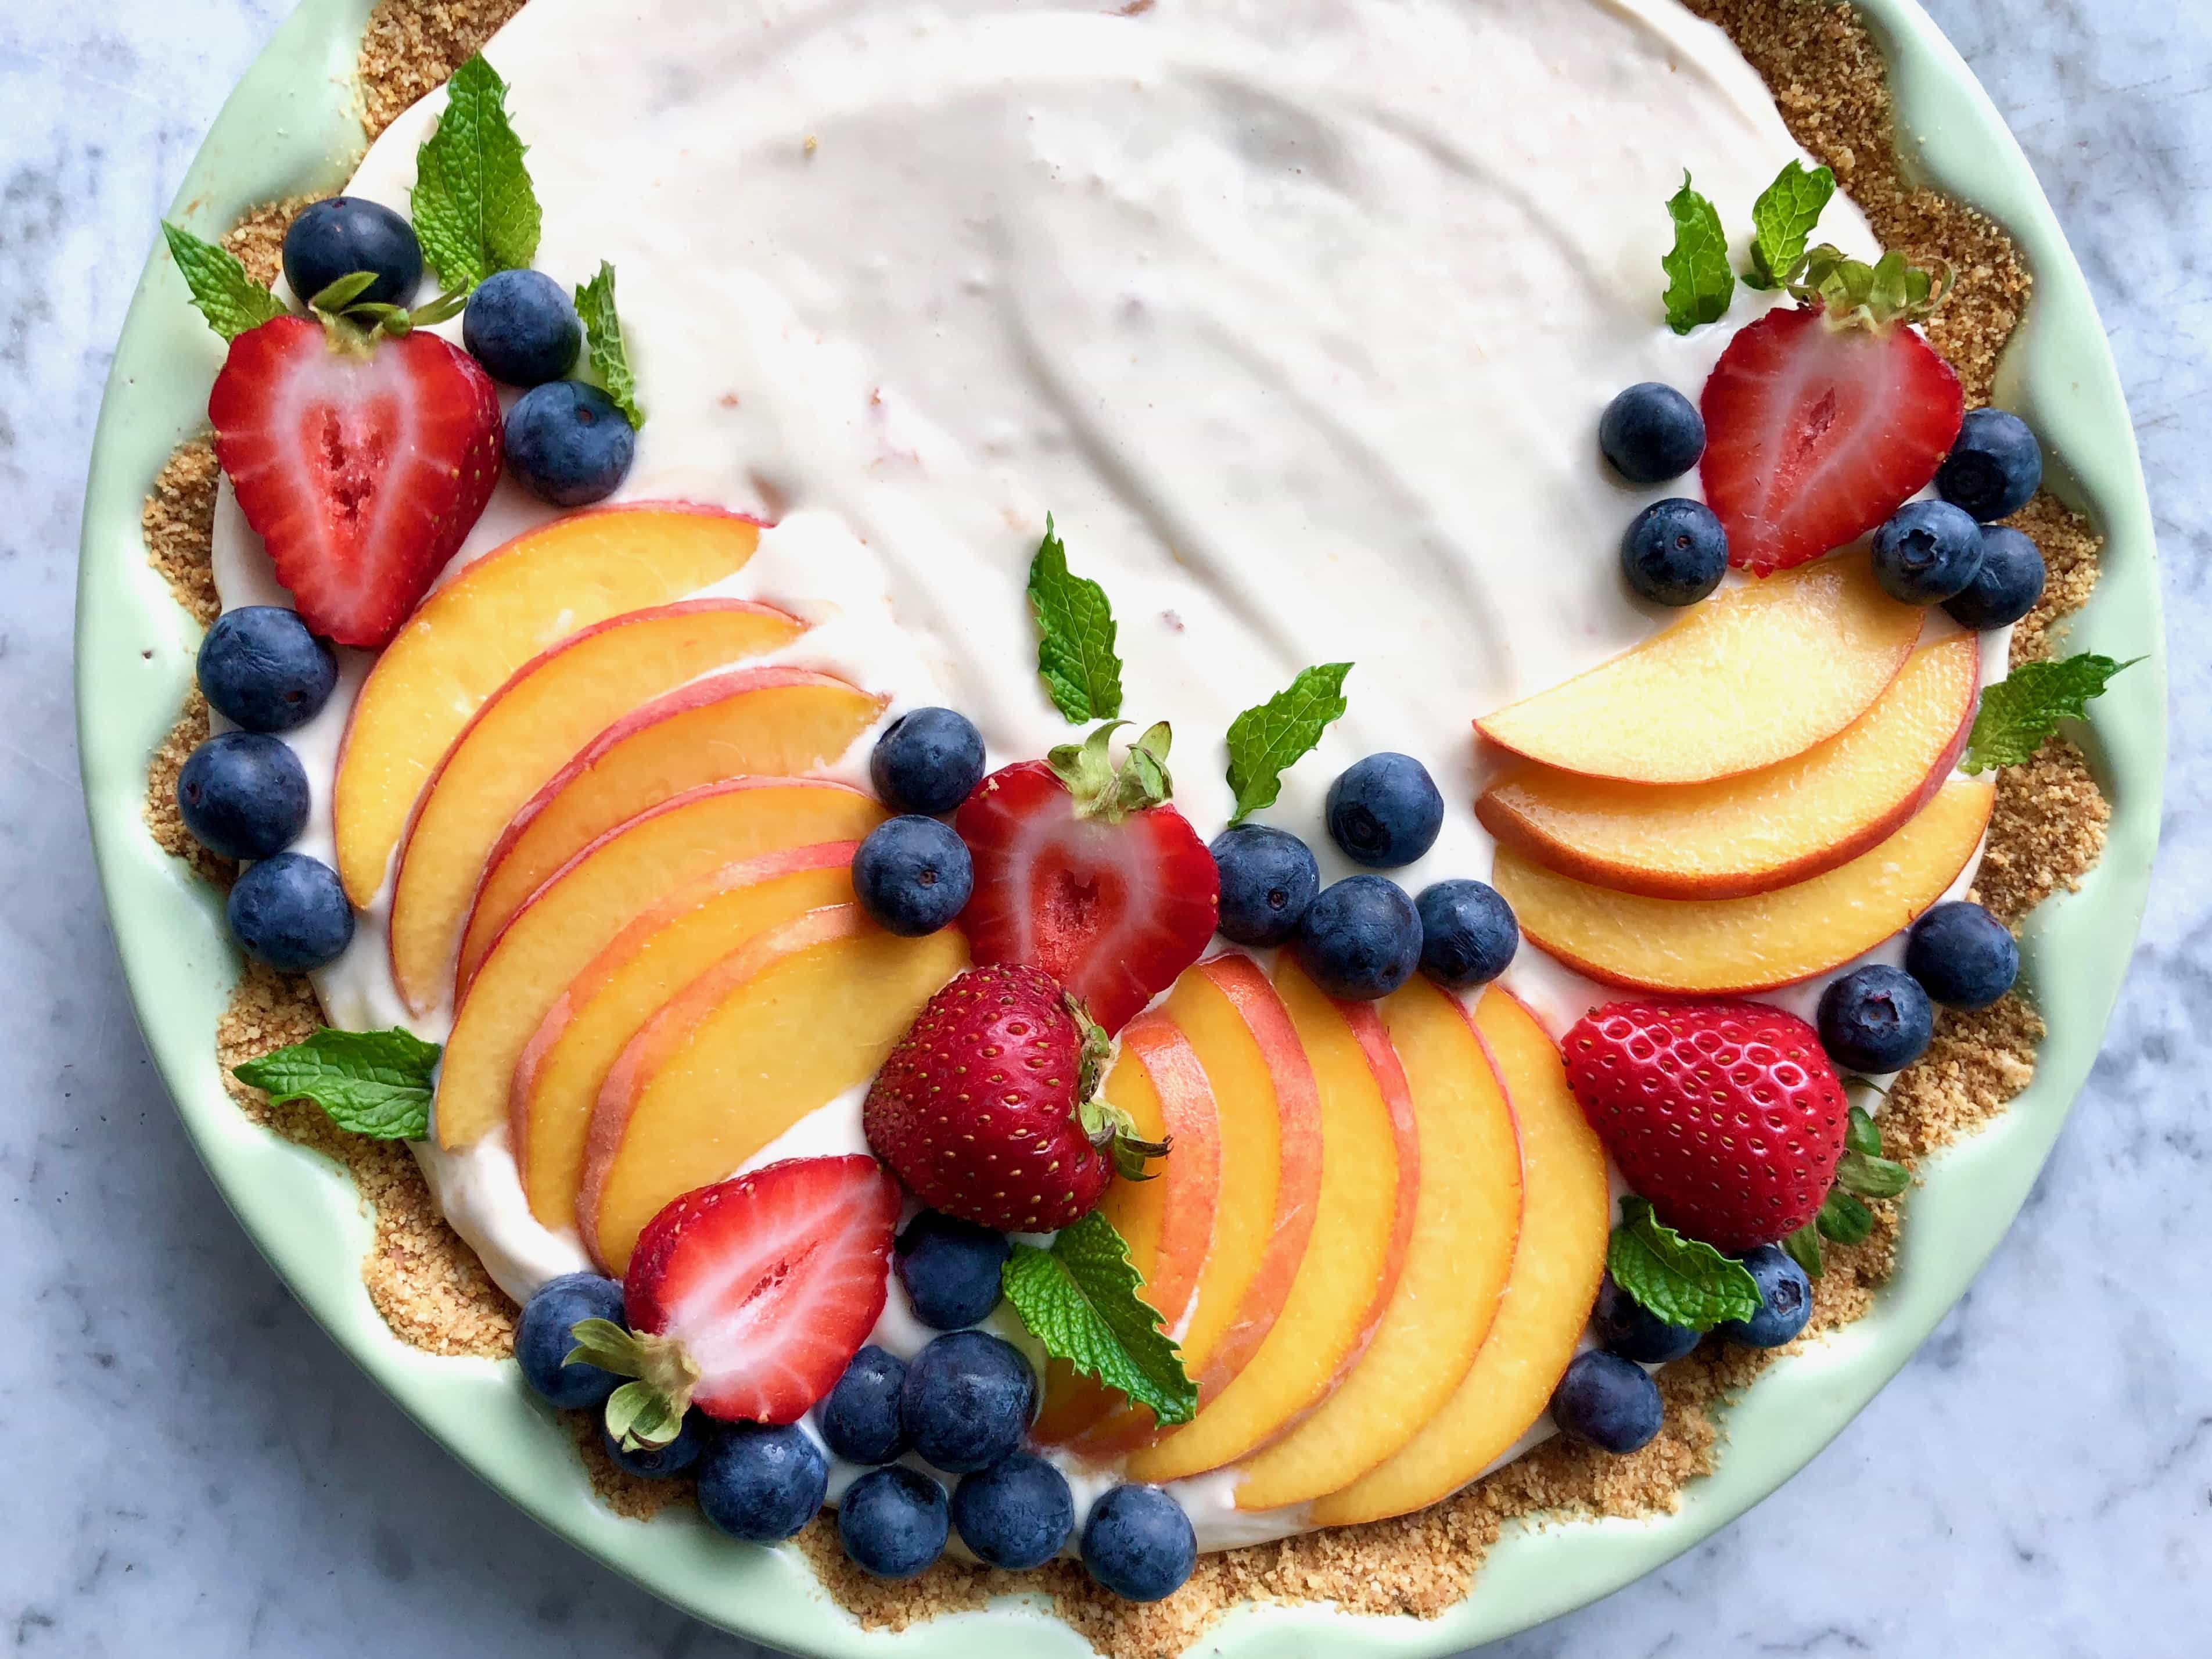 tart garnished with berries in a green tart dish